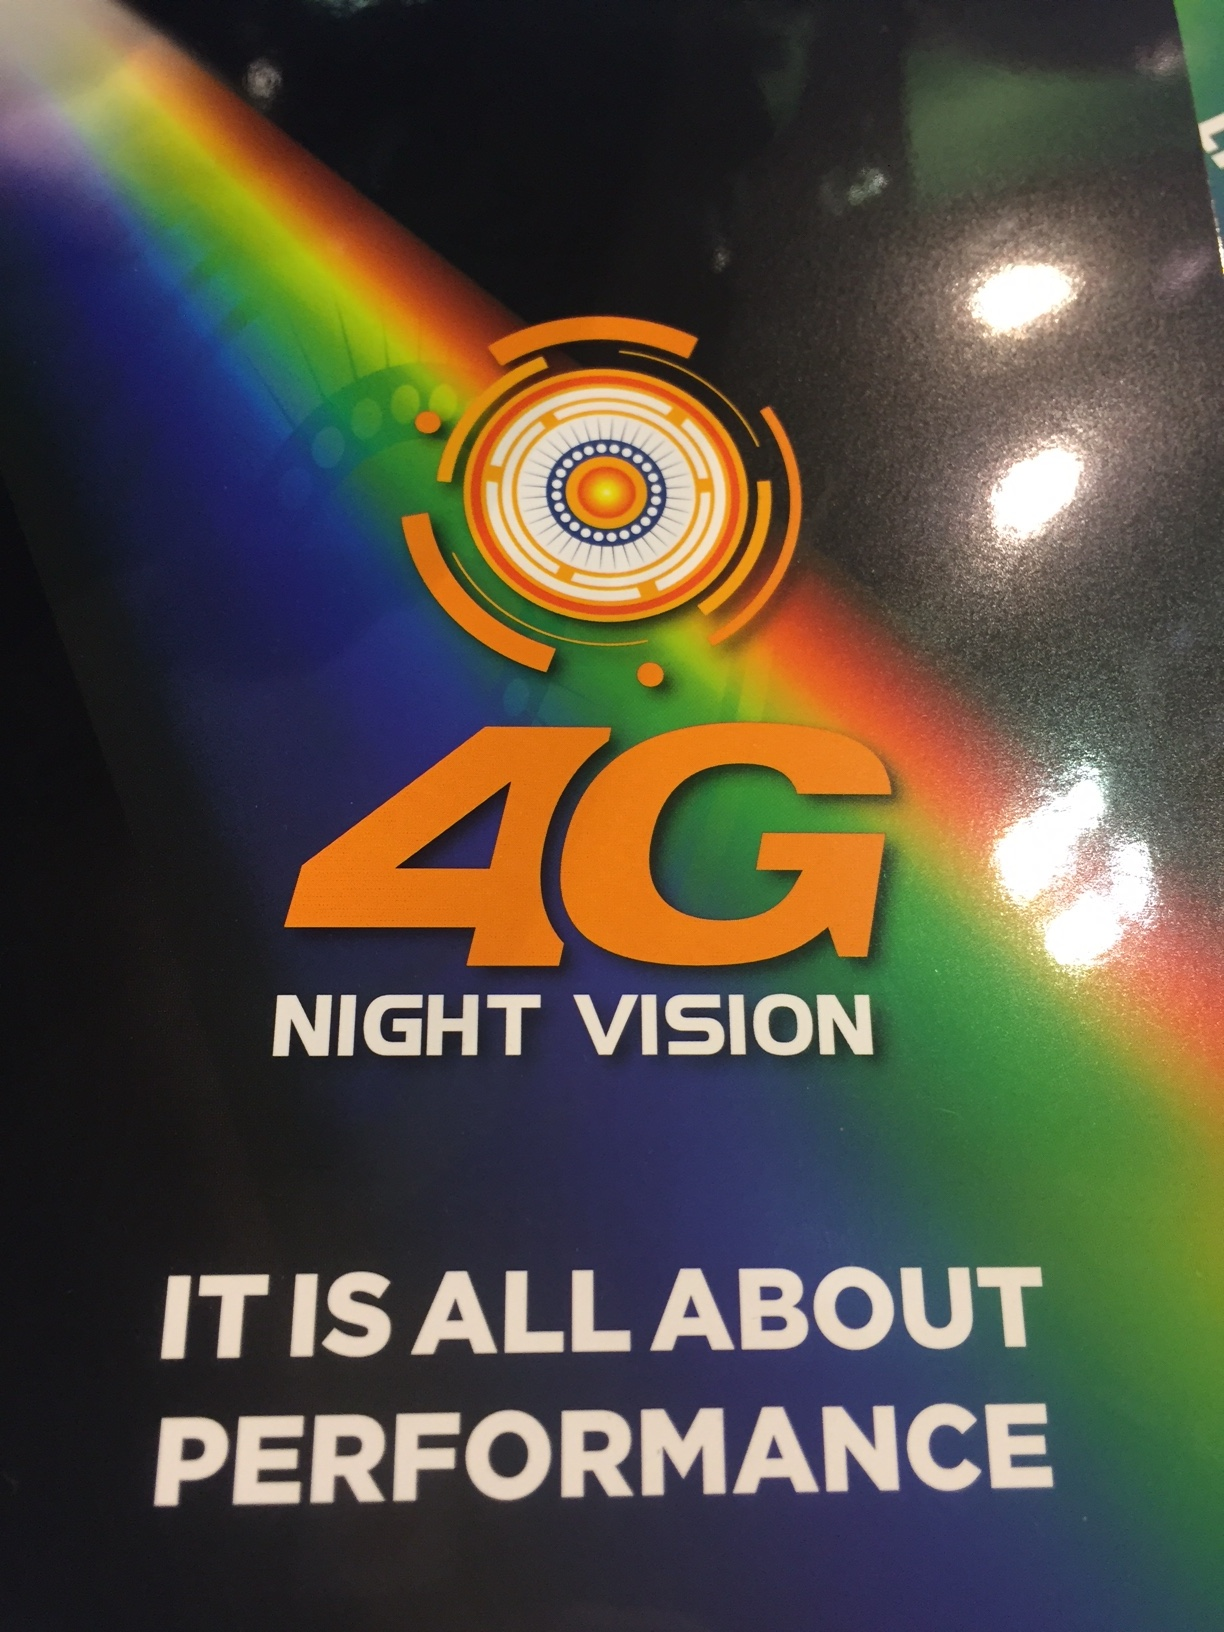 4G Intens™ Night Vision Intensifier tube from Photonis